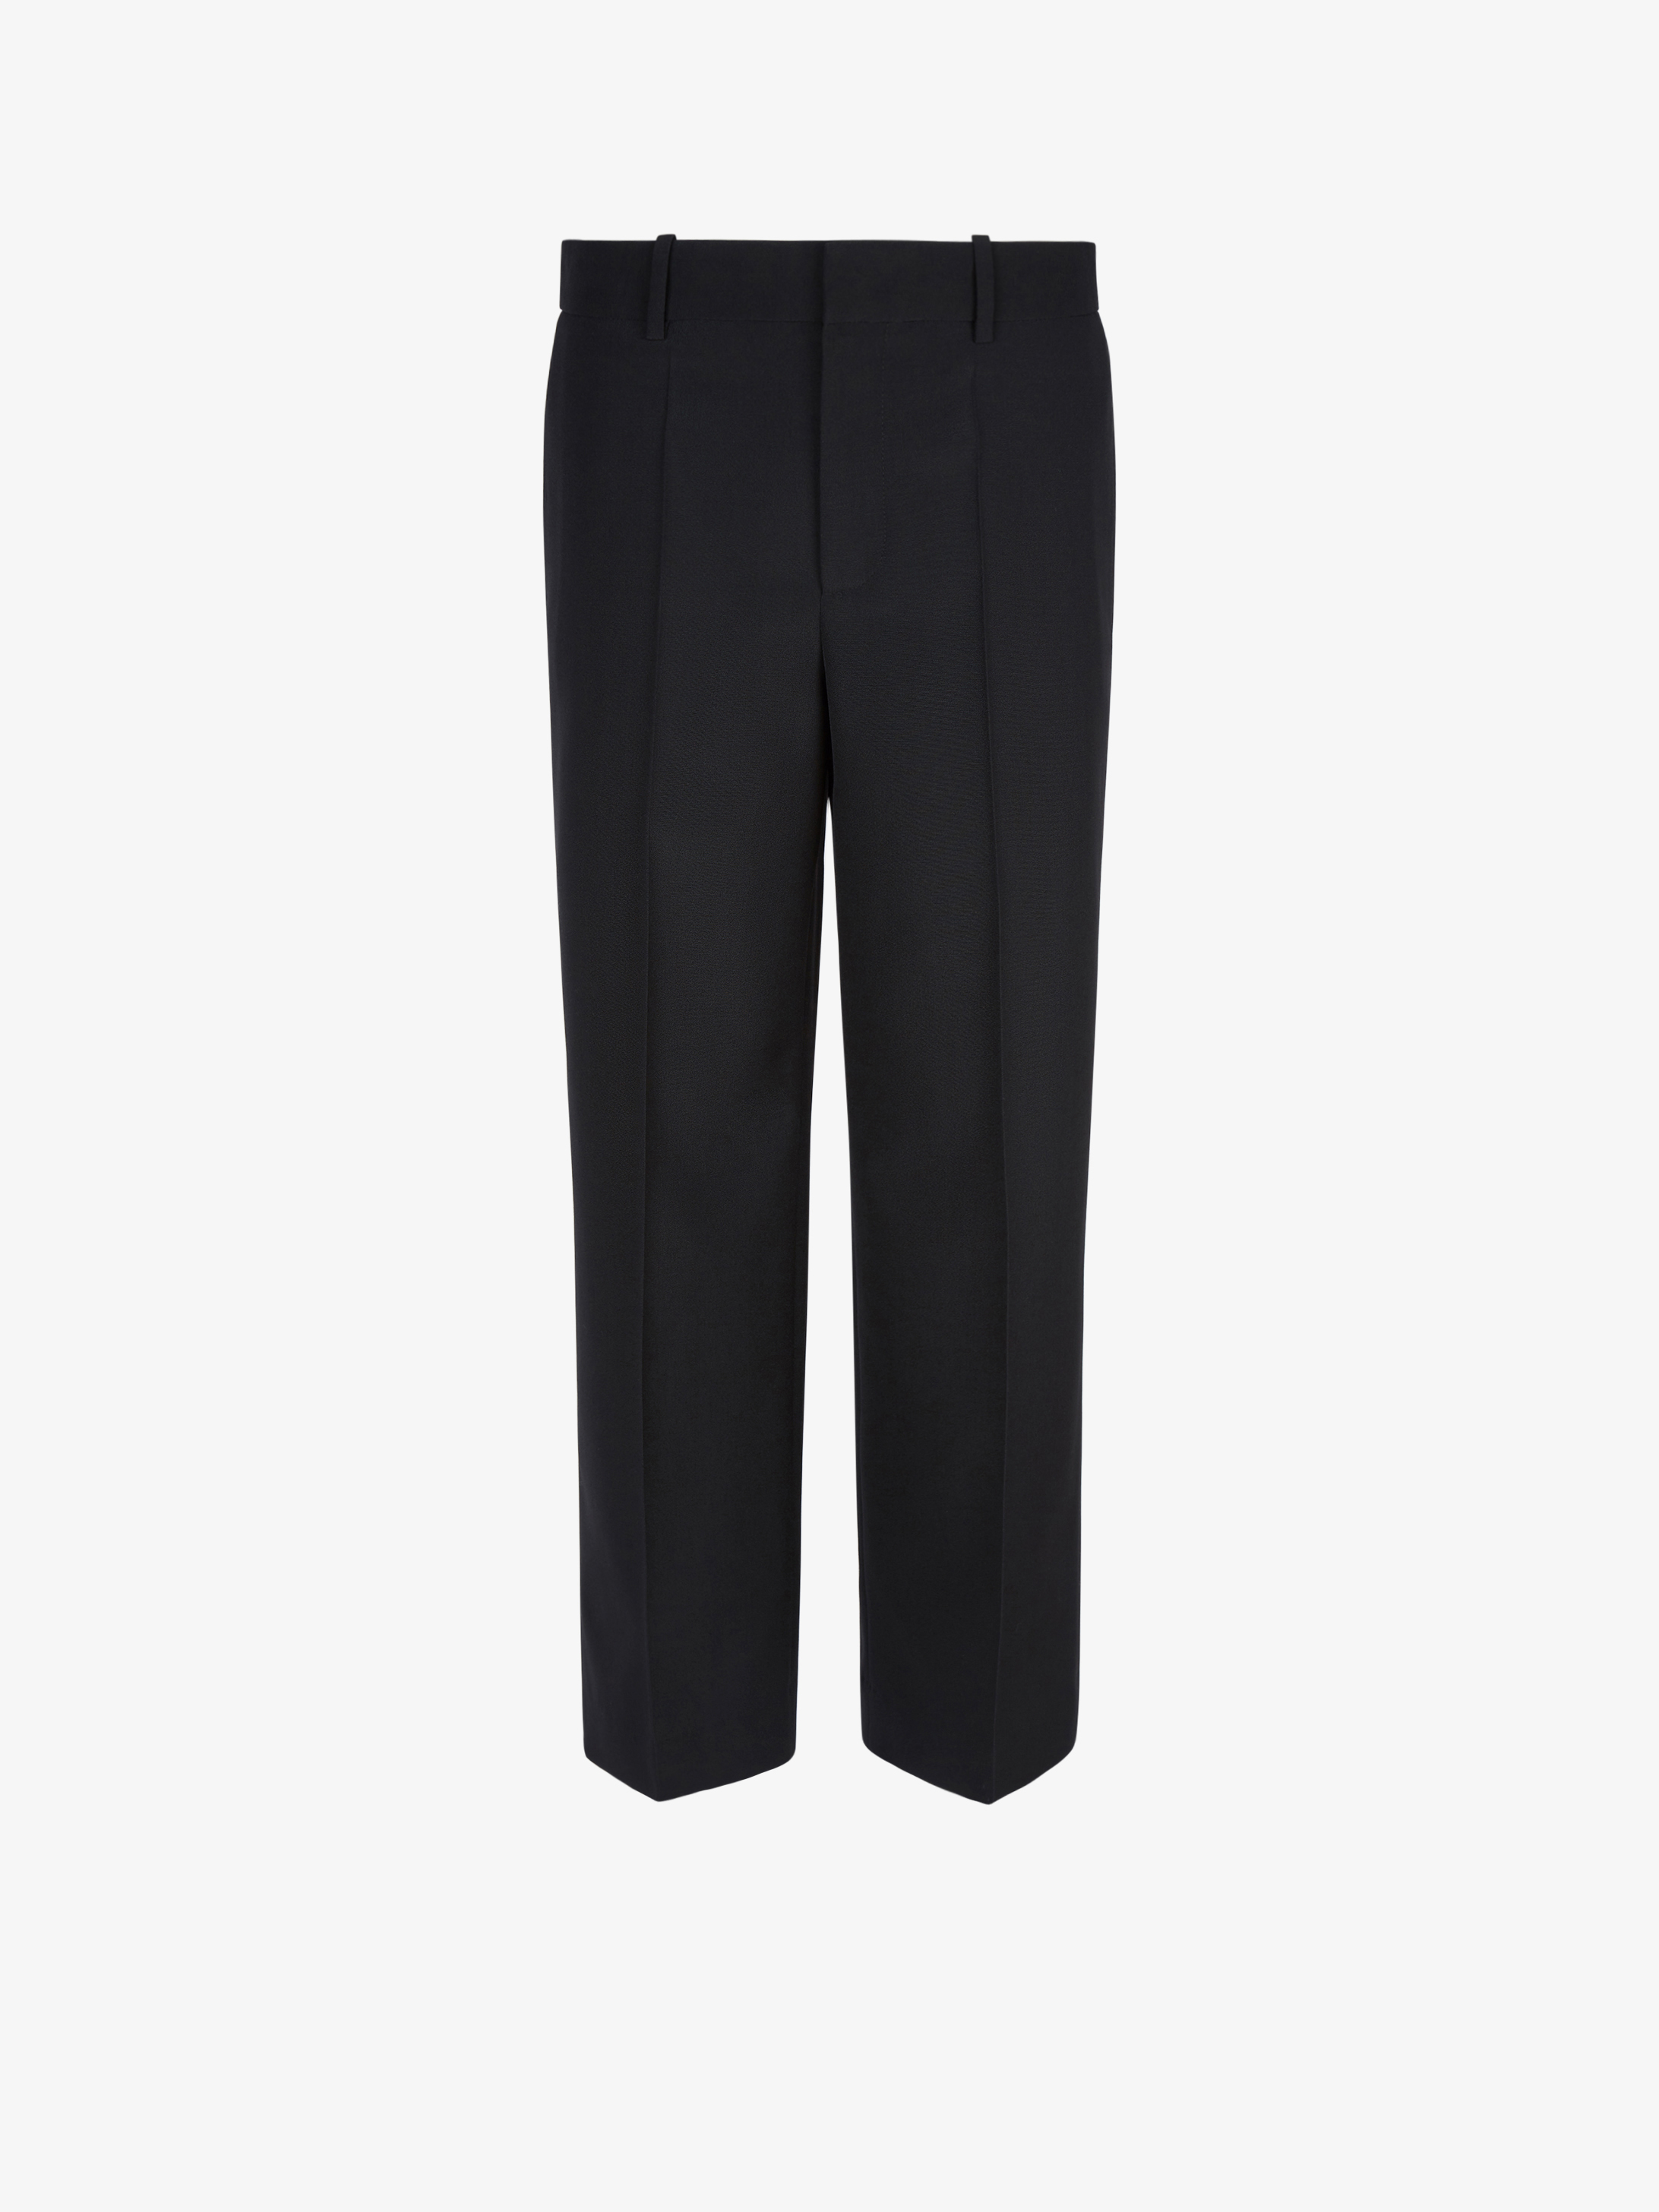 Short masculine trousers in wool